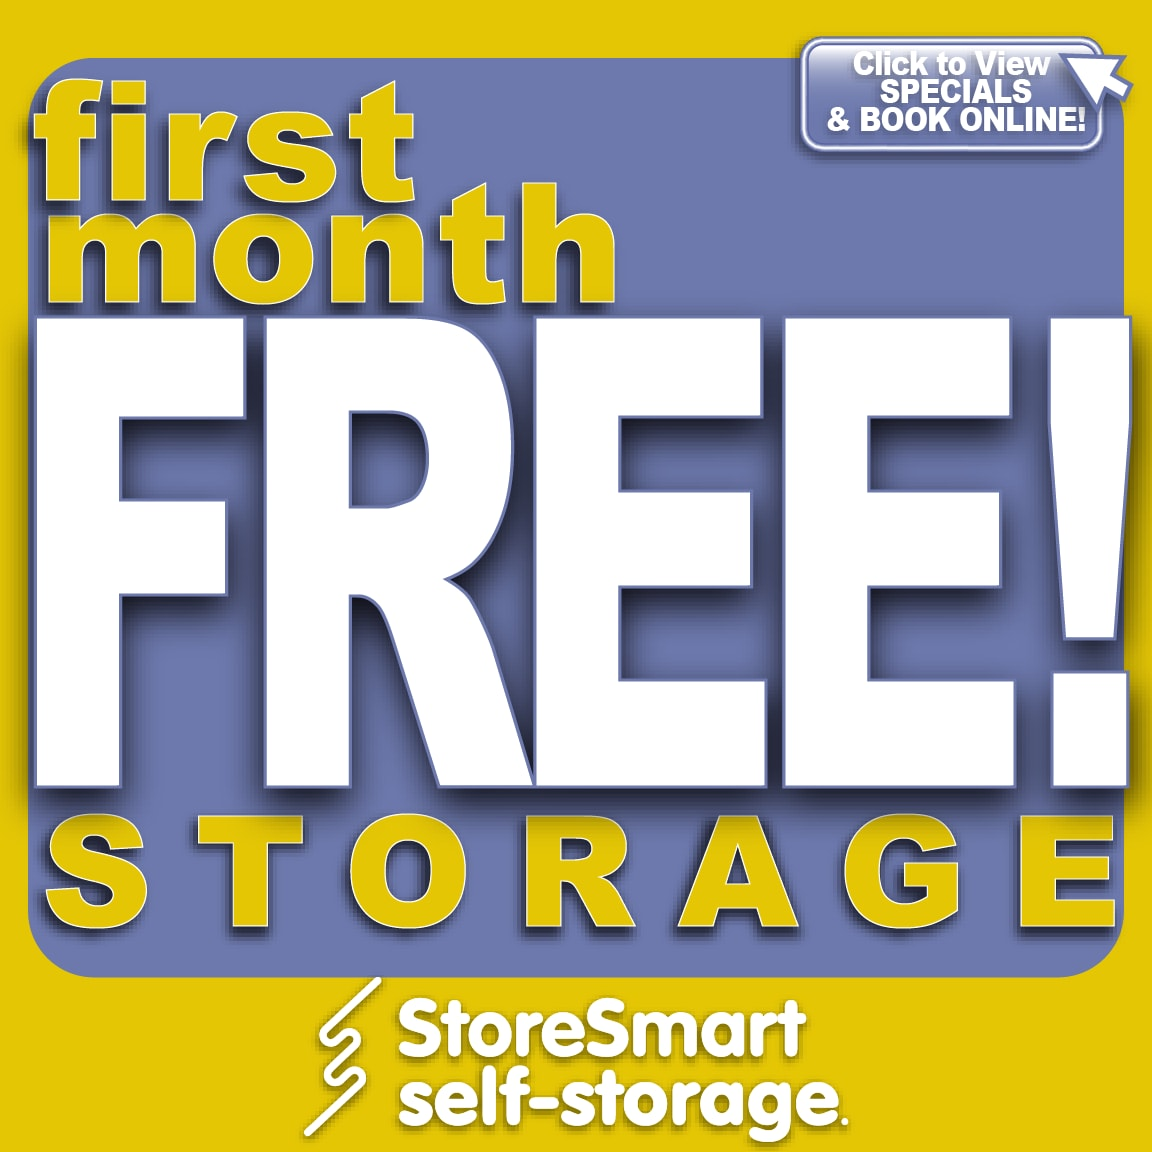 Special at StoreSmart Self-Storage in Raleigh, North Carolina